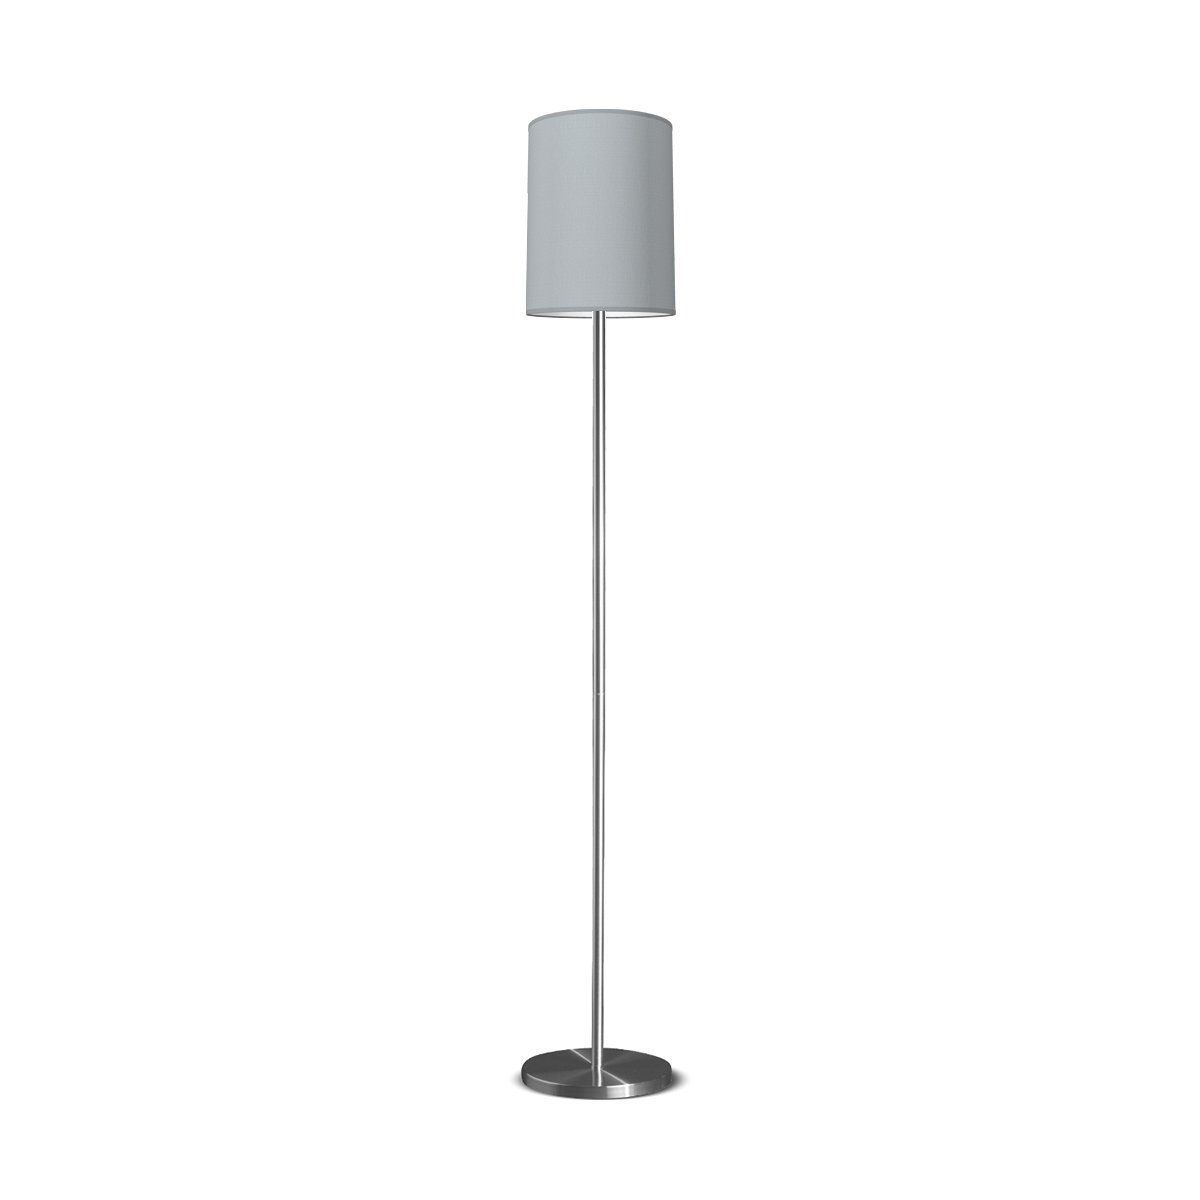 HOME SWEET HOME vloerlamp mauro tube Ø 30 cm - Light grey